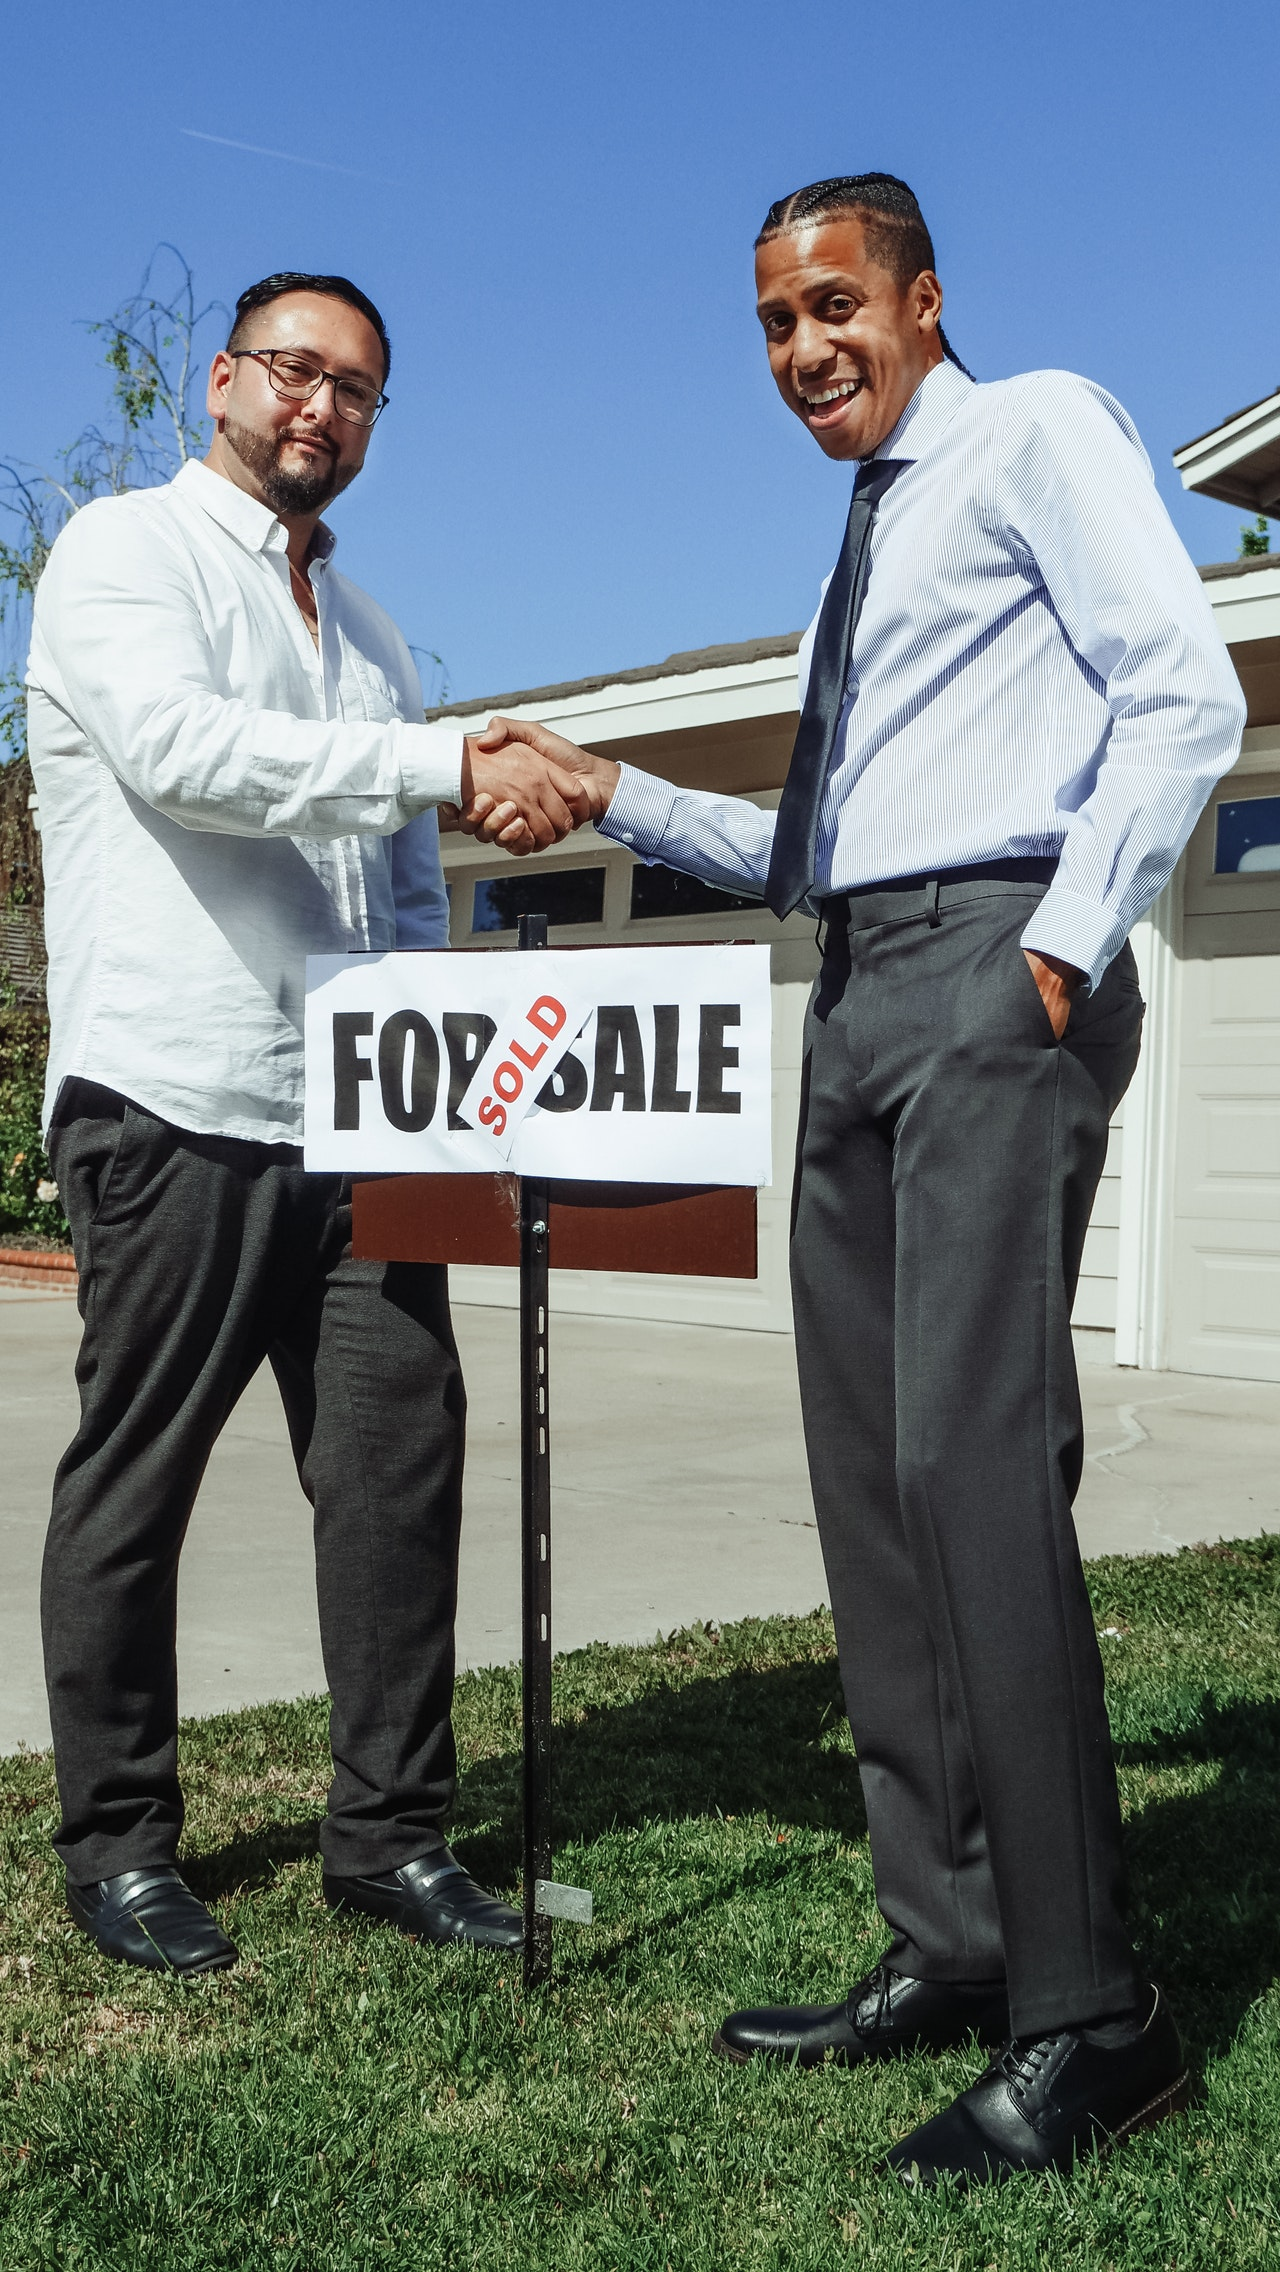 Loan First-Time Buyers Article Image